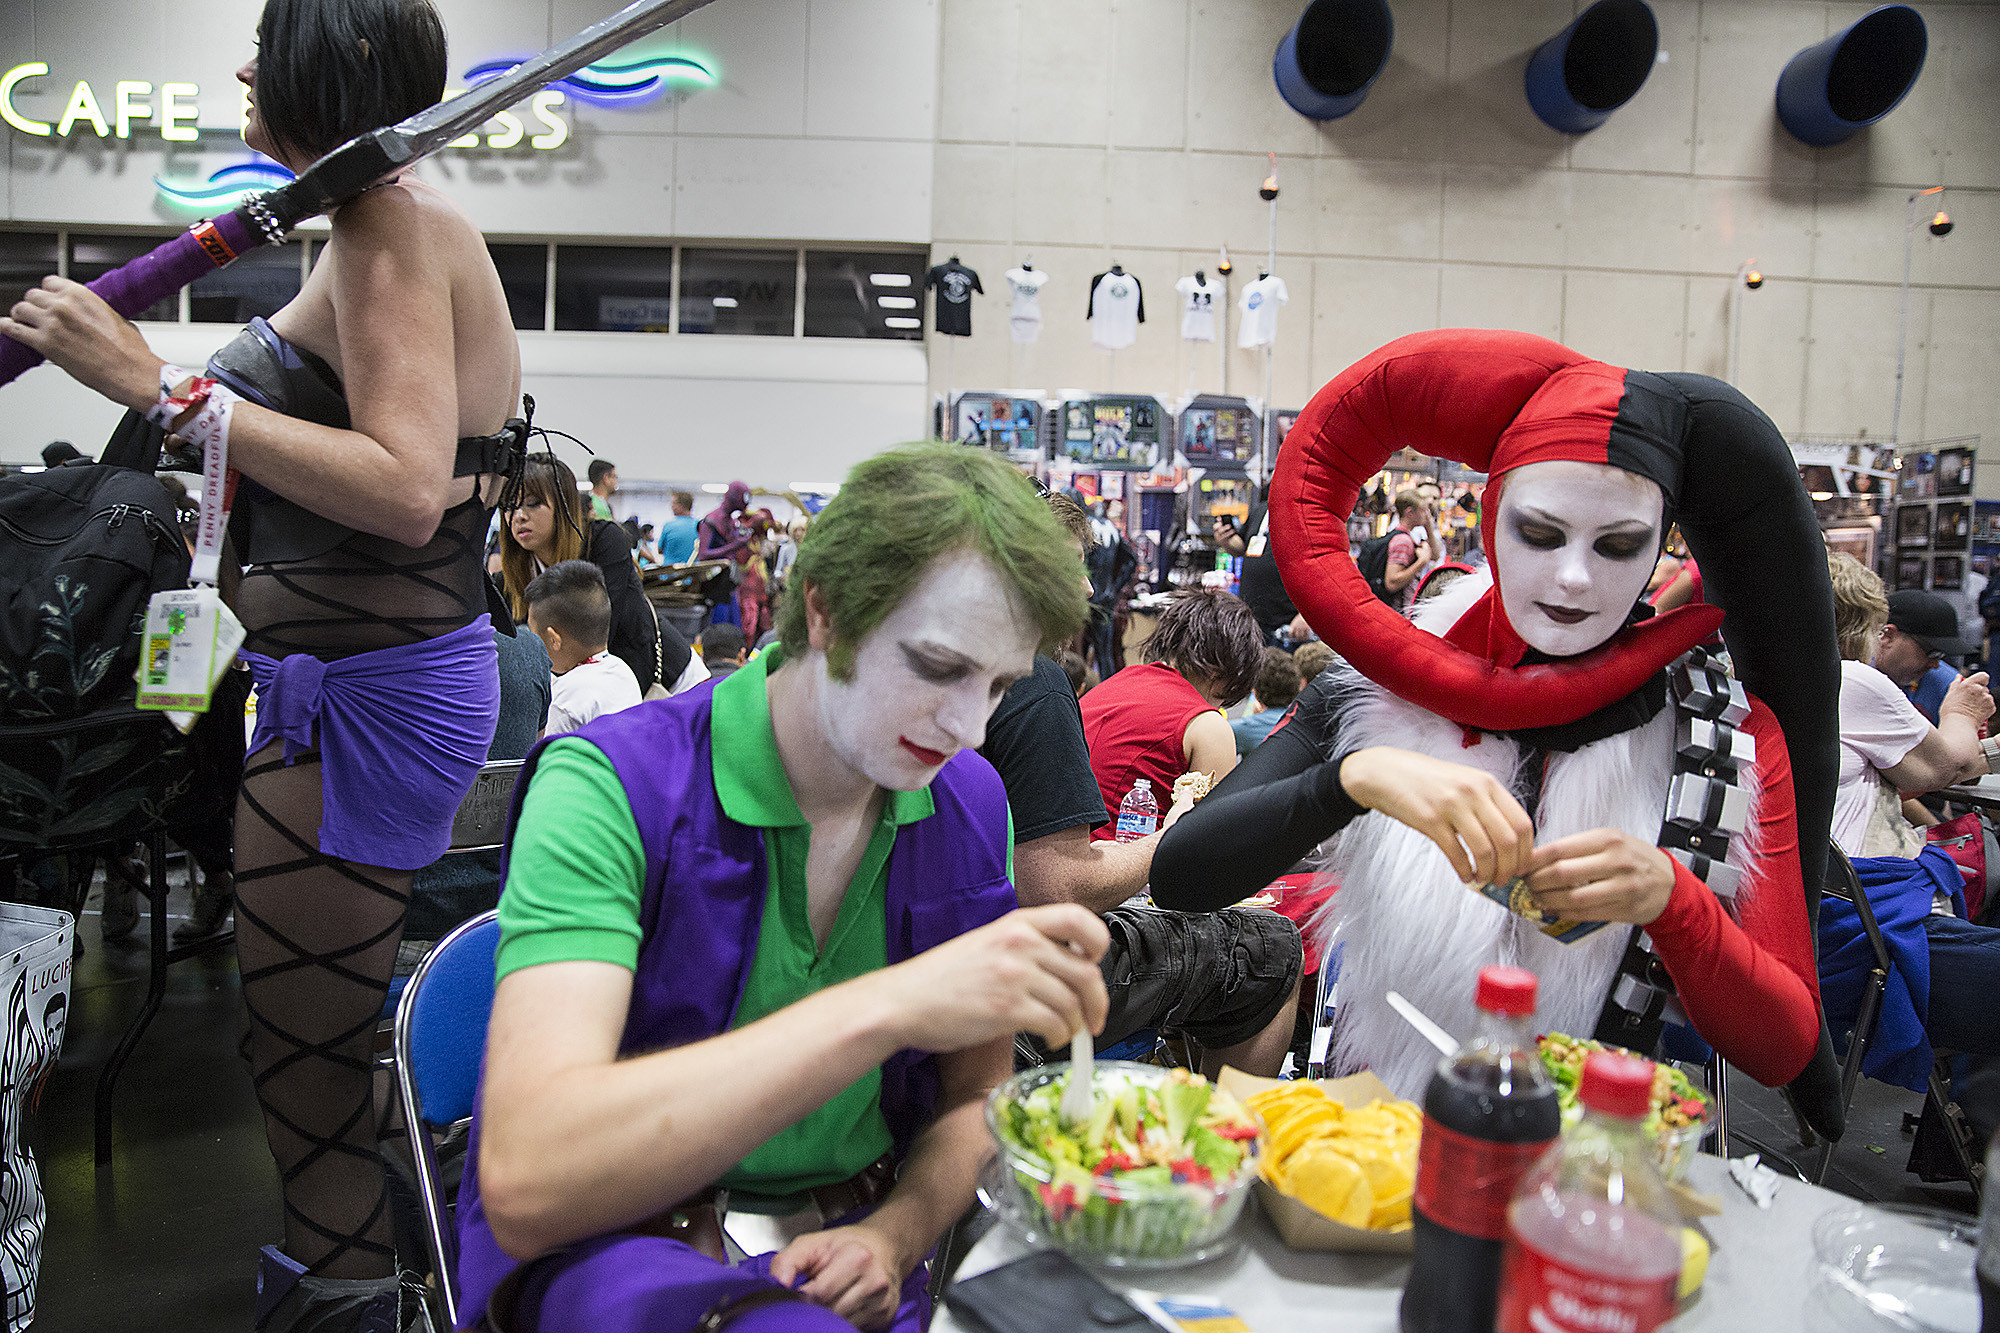 PEOPLE AT COMIC CON GET TO SEE A LOT OF TRAILERS FROM YOUTUBE